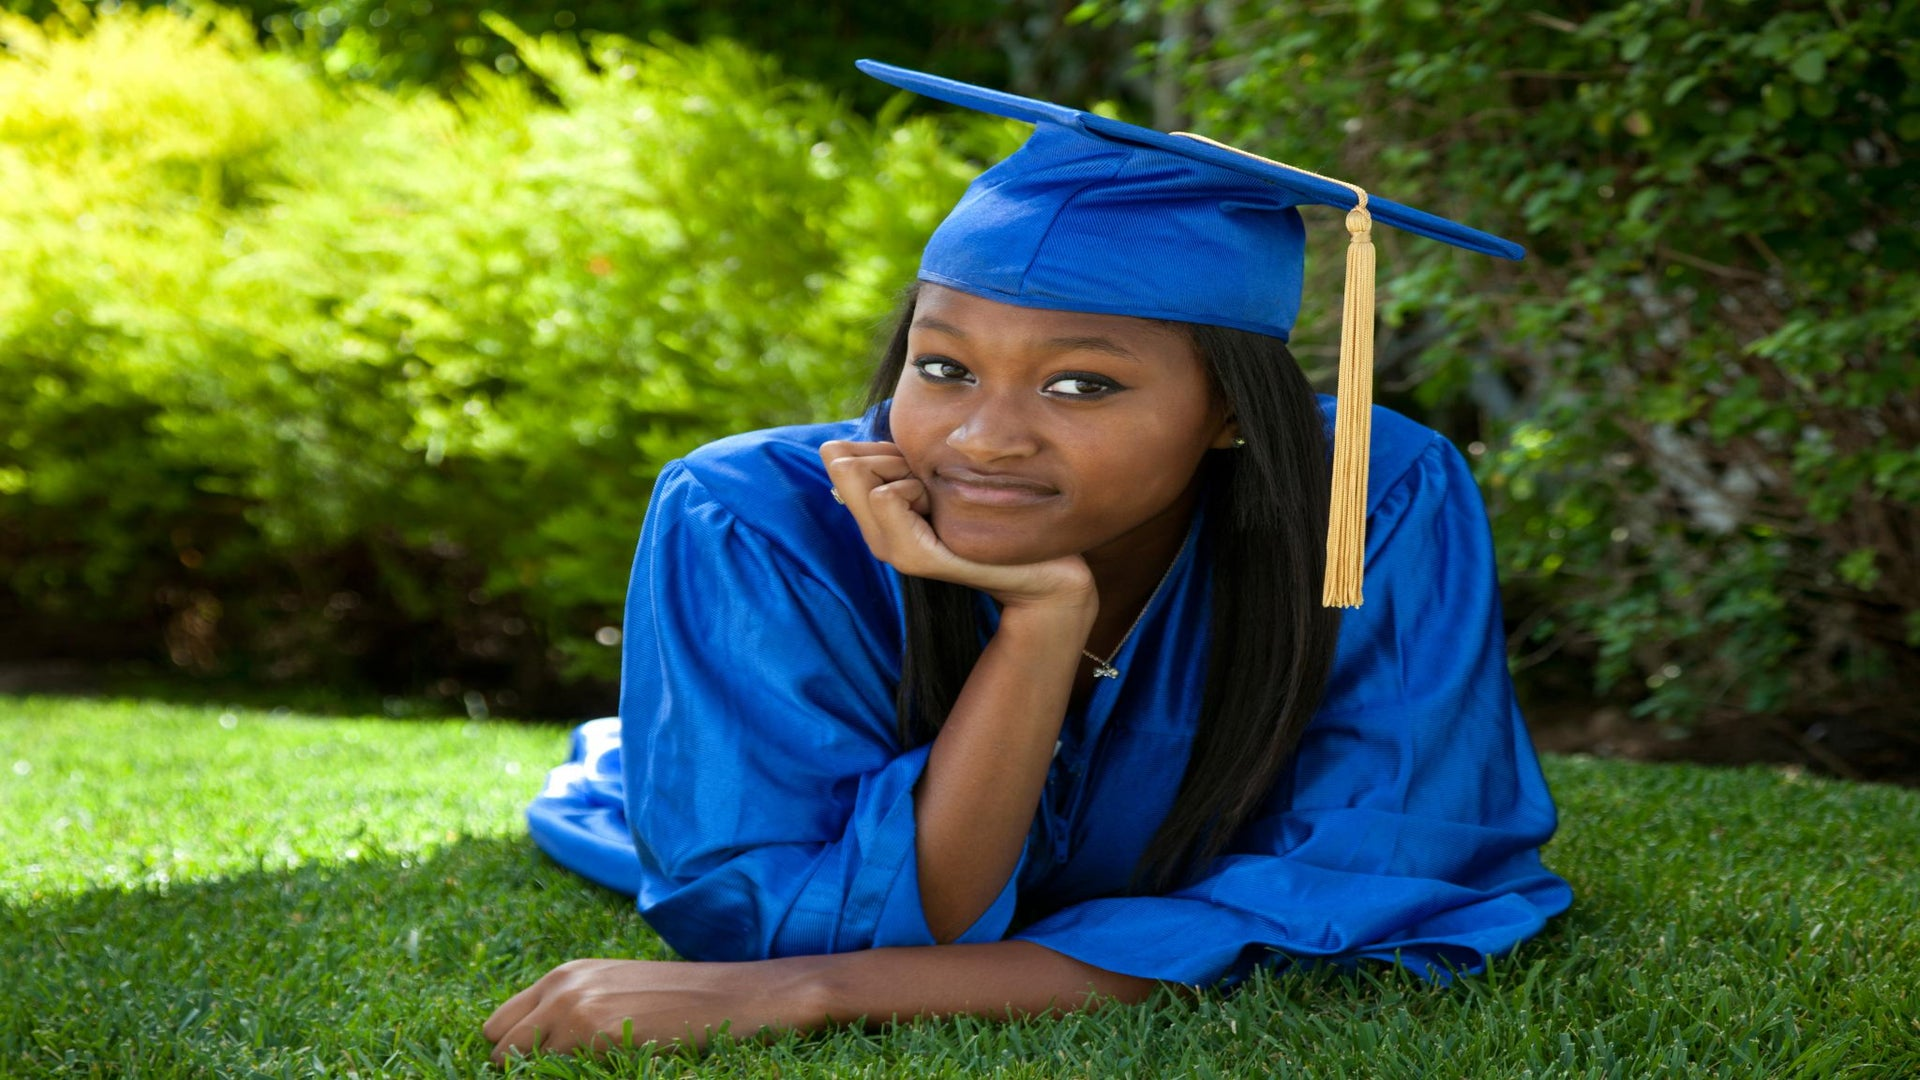 Undergrad Regrets: If I Could Do College All Over Again, Here's How I'd Do It